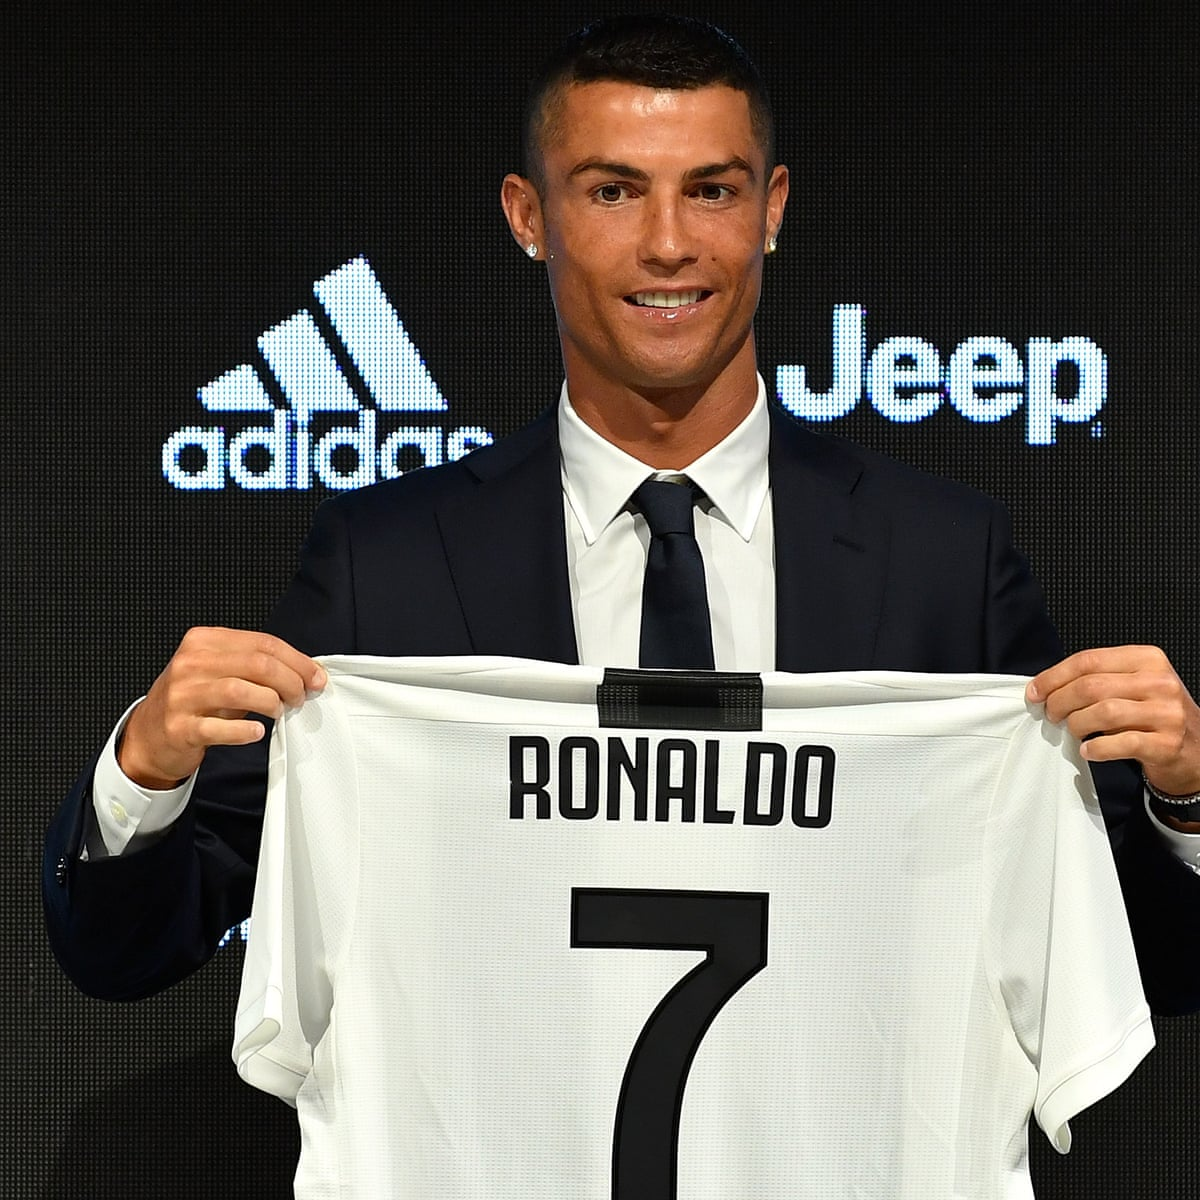 Cristiano Ronaldo Vows To Make Mark At Juventus After Seizing Opportunity Football The Guardian